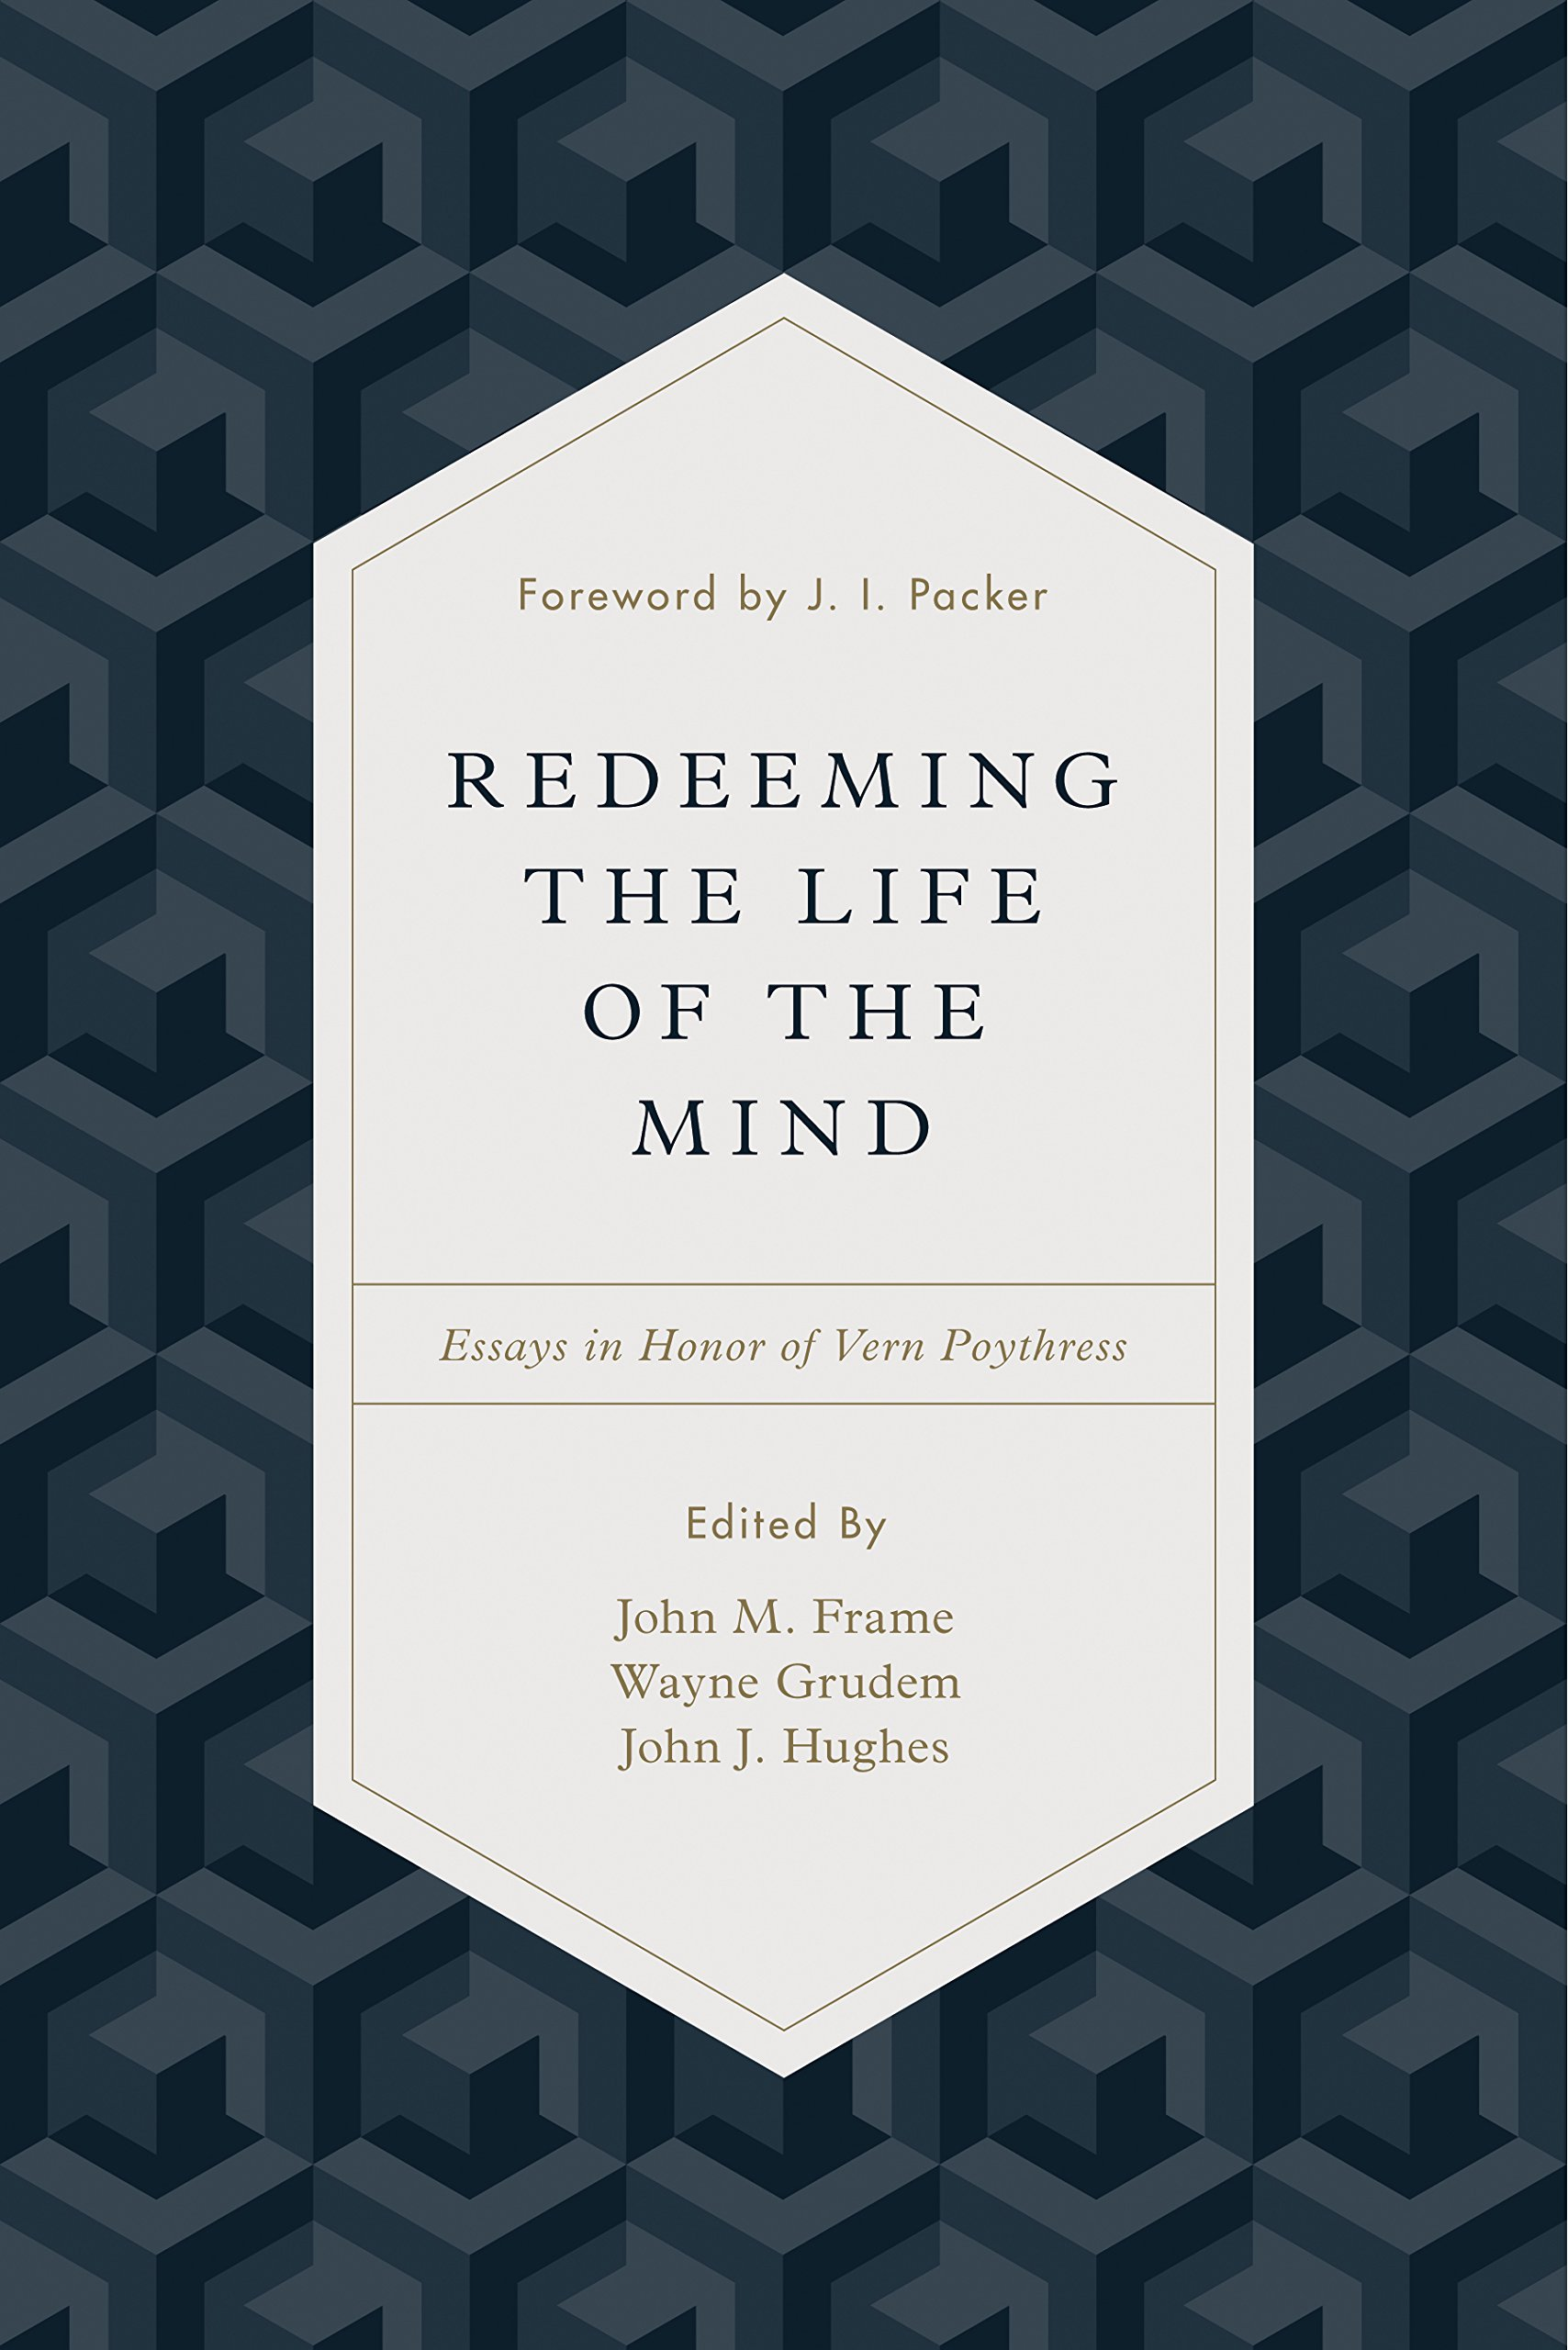 redeeming_the_life_of_the_mind